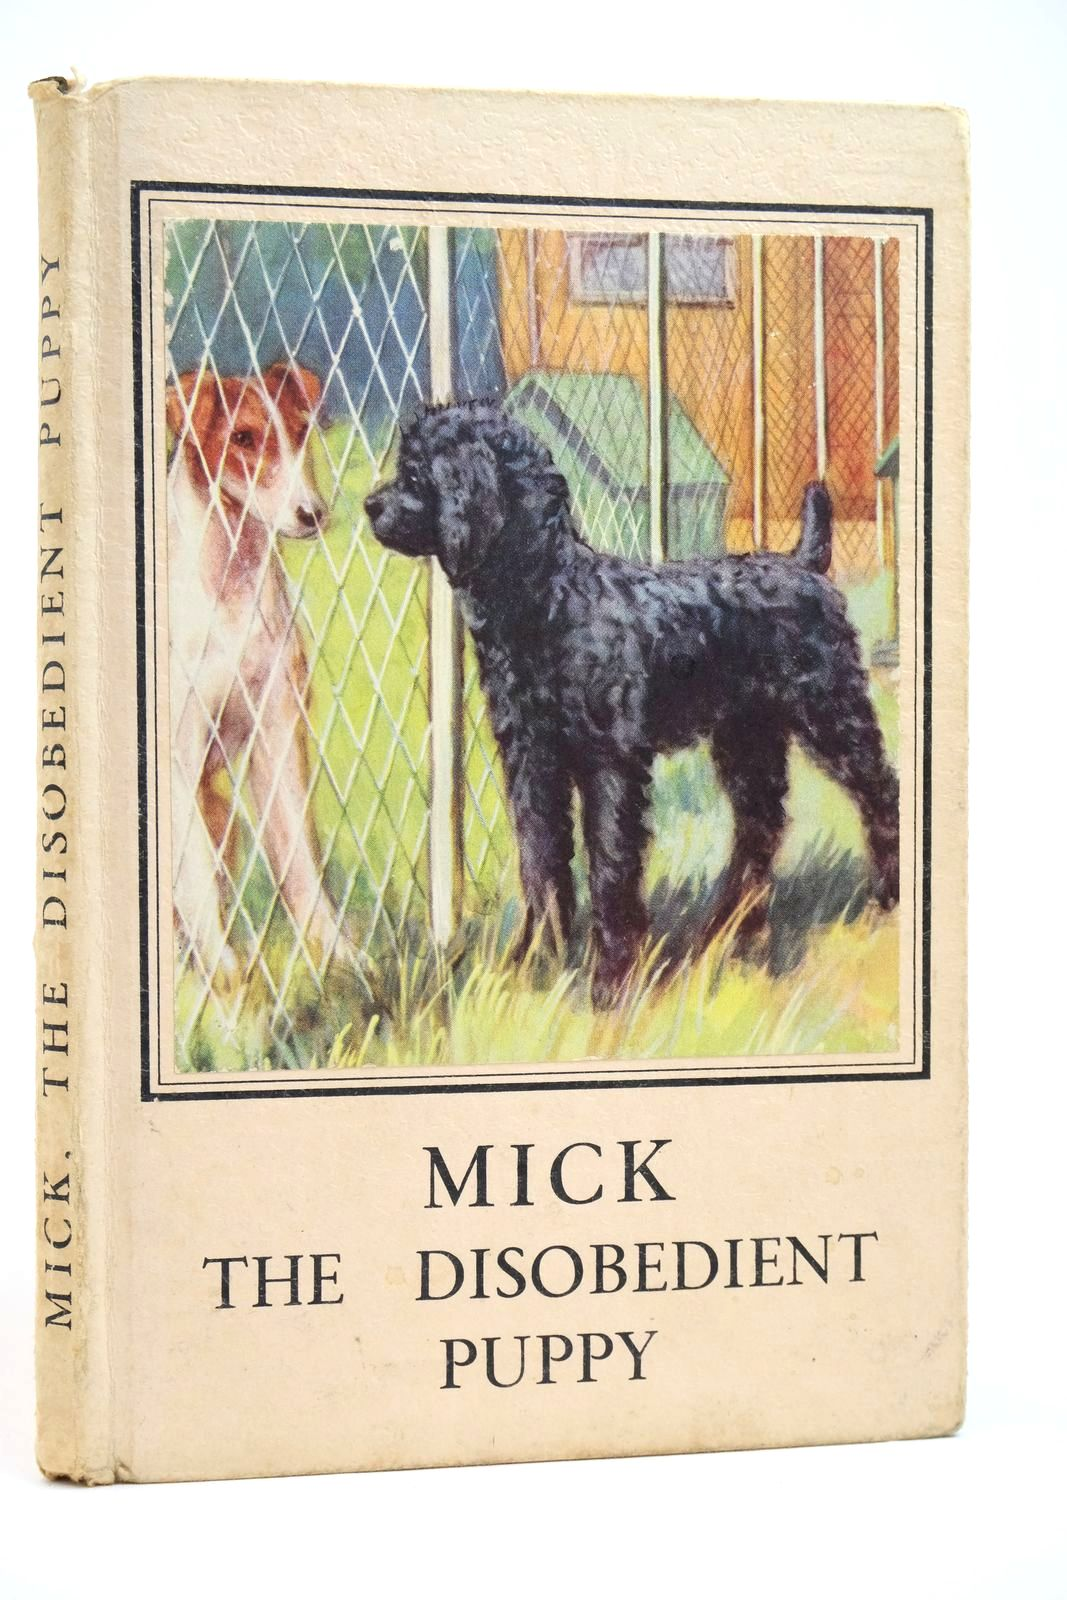 Photo of MICK THE DISOBEDIENT PUPPY written by Barr, Noel illustrated by Hickling, P.B. published by Wills & Hepworth Ltd. (STOCK CODE: 2135156)  for sale by Stella & Rose's Books